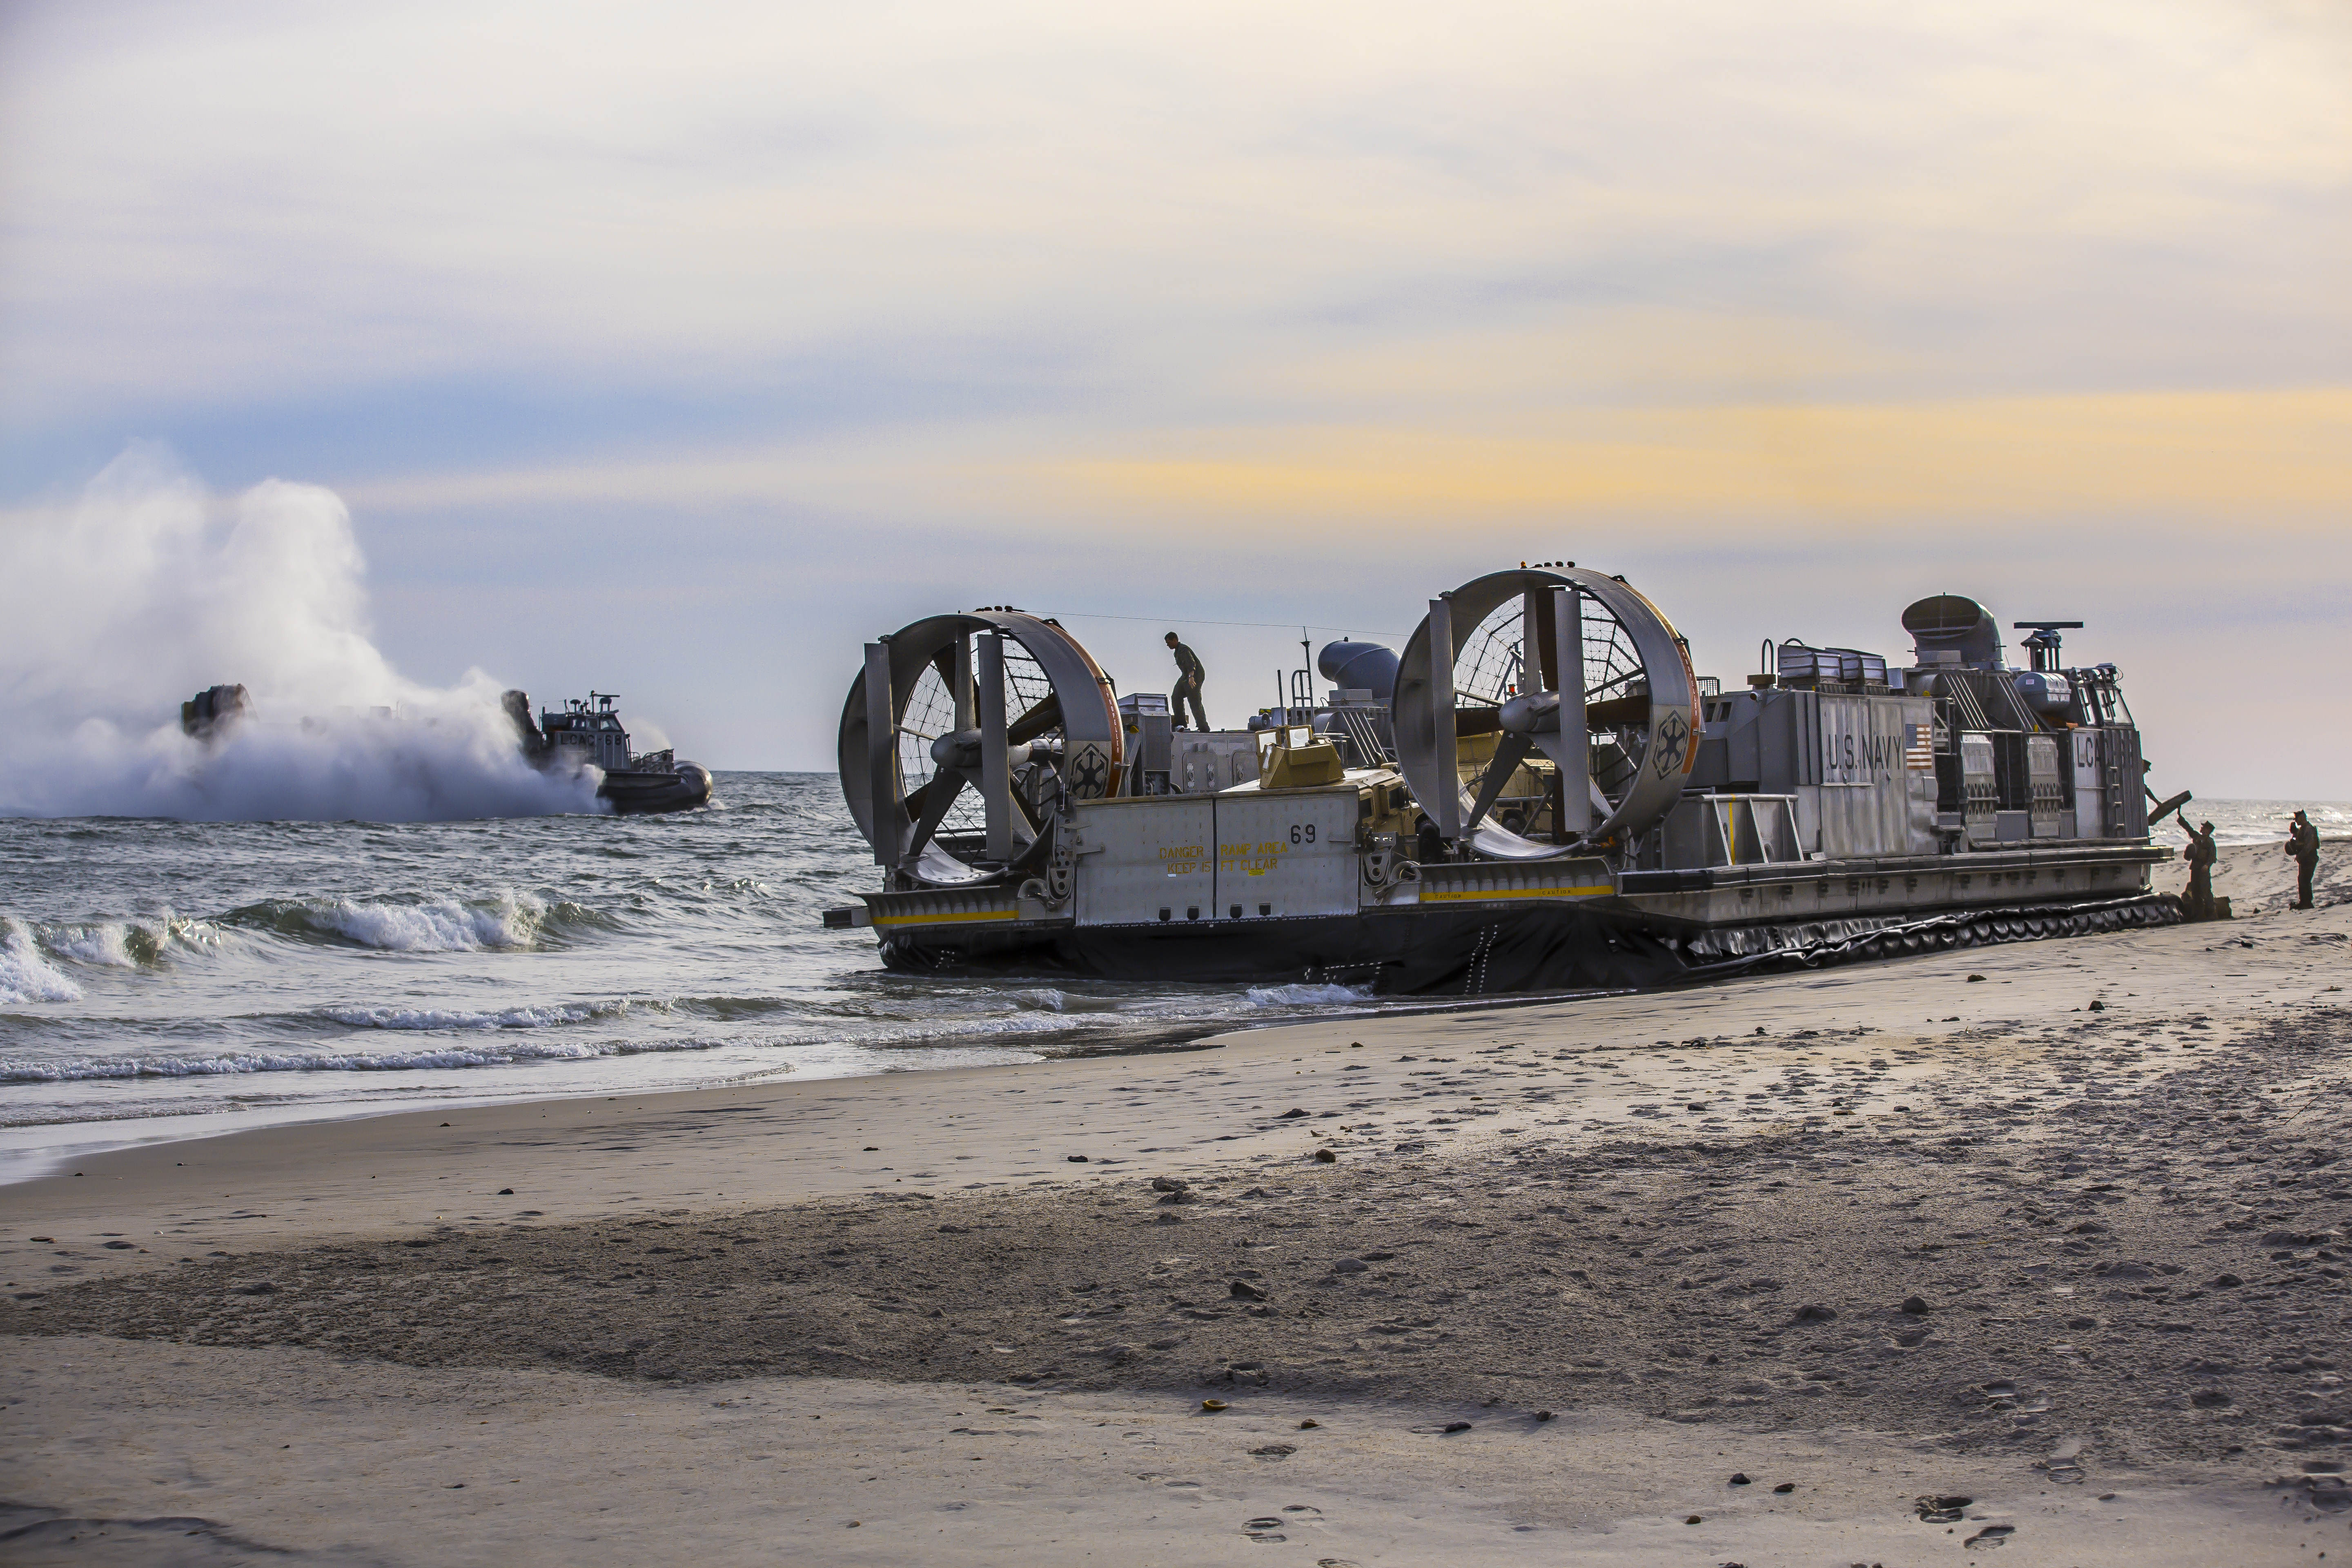 CAMP LE JEUNE, N.C. (Nov. 4, 2014) Marines disembark landing craft air cushion (LCAC) vehicles at Camp Le Jeune, N.C. during the multinational exercise Bold Alligator 2014. Bold Alligator is intended to improve Navy and Marine Corps amphibious core competencies. Working with coalition, NATO, allied and partner nations is a necessary investment in the current and future readiness of our forces. The exercise takes place Oct. 29 - Nov. 10, 2014, afloat and ashore along the Eastern seaboard. #BoldAlligator14 (U.S. Navy photo by Mass Communication Specialist 2nd Class Corbin J. Shea/Released)